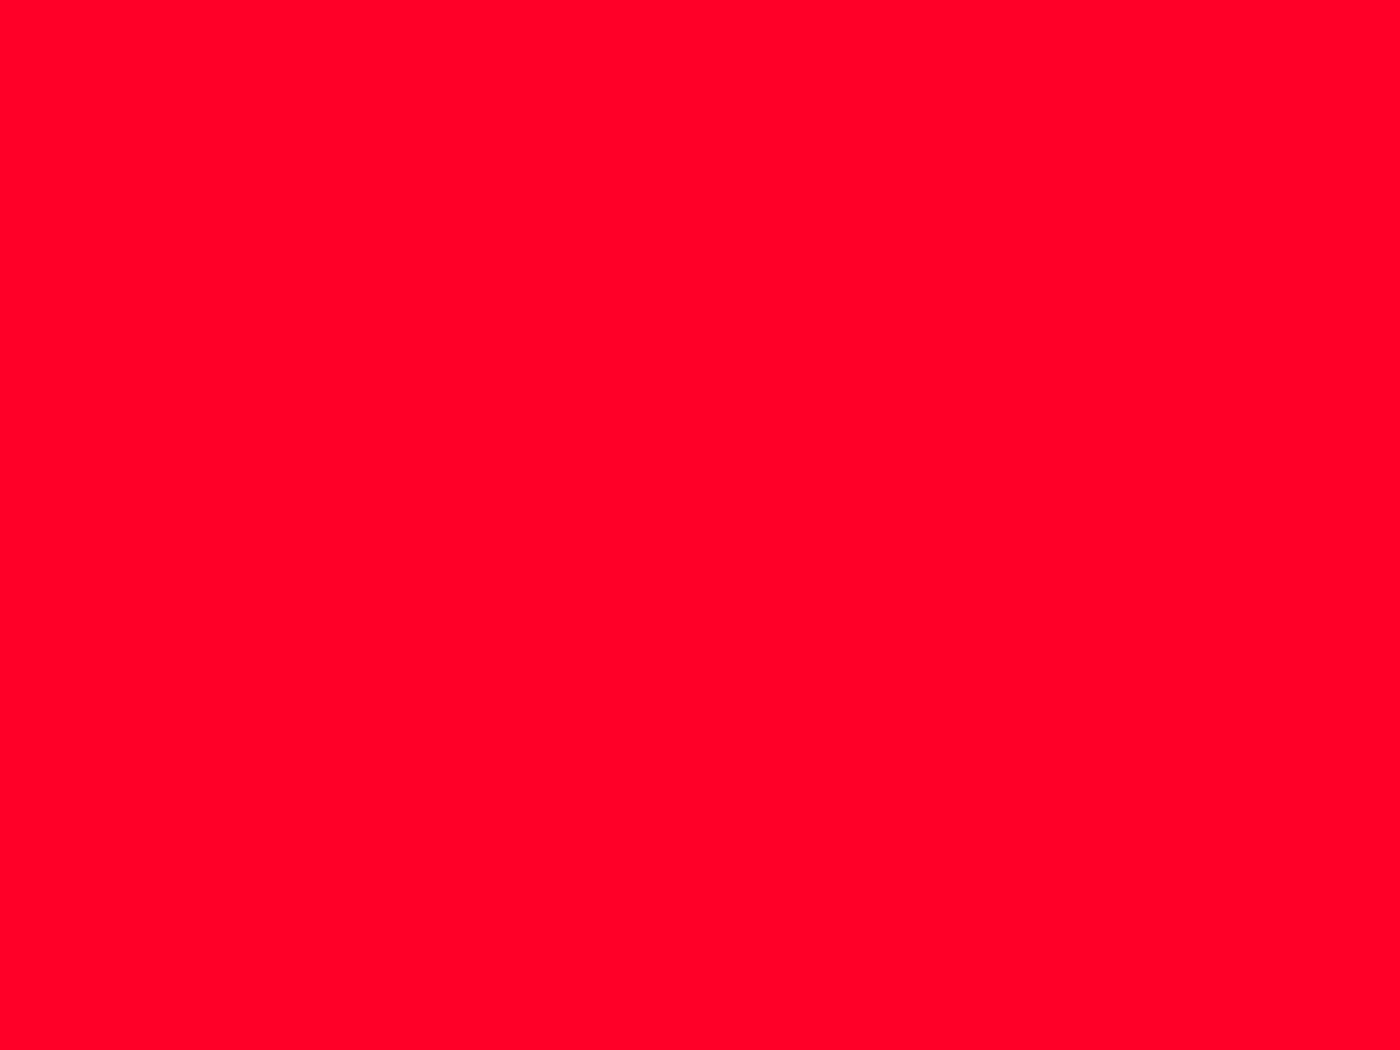 1400x1050 Ruddy Solid Color Background